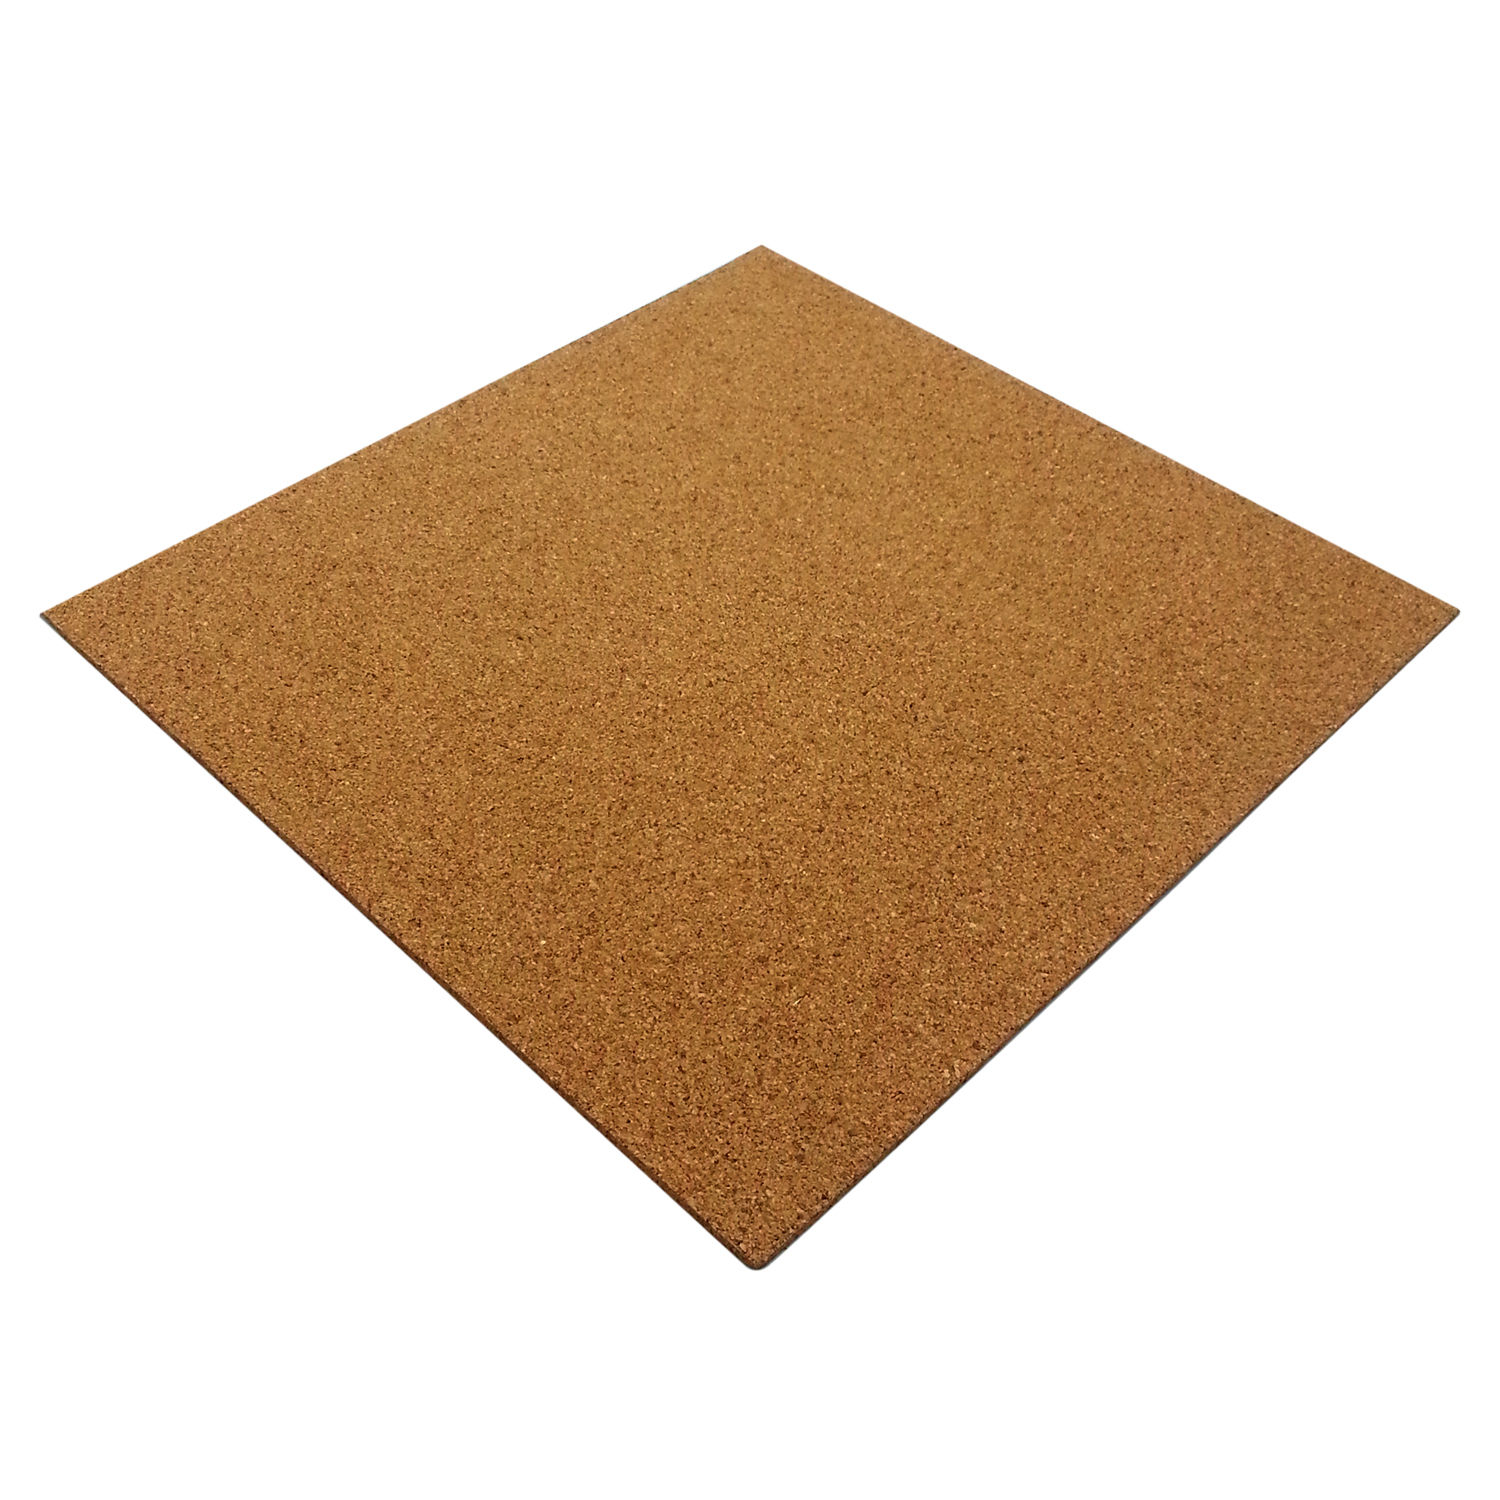 20 x natural cork tiles self adhesive for floor wall for Cork floor tiles